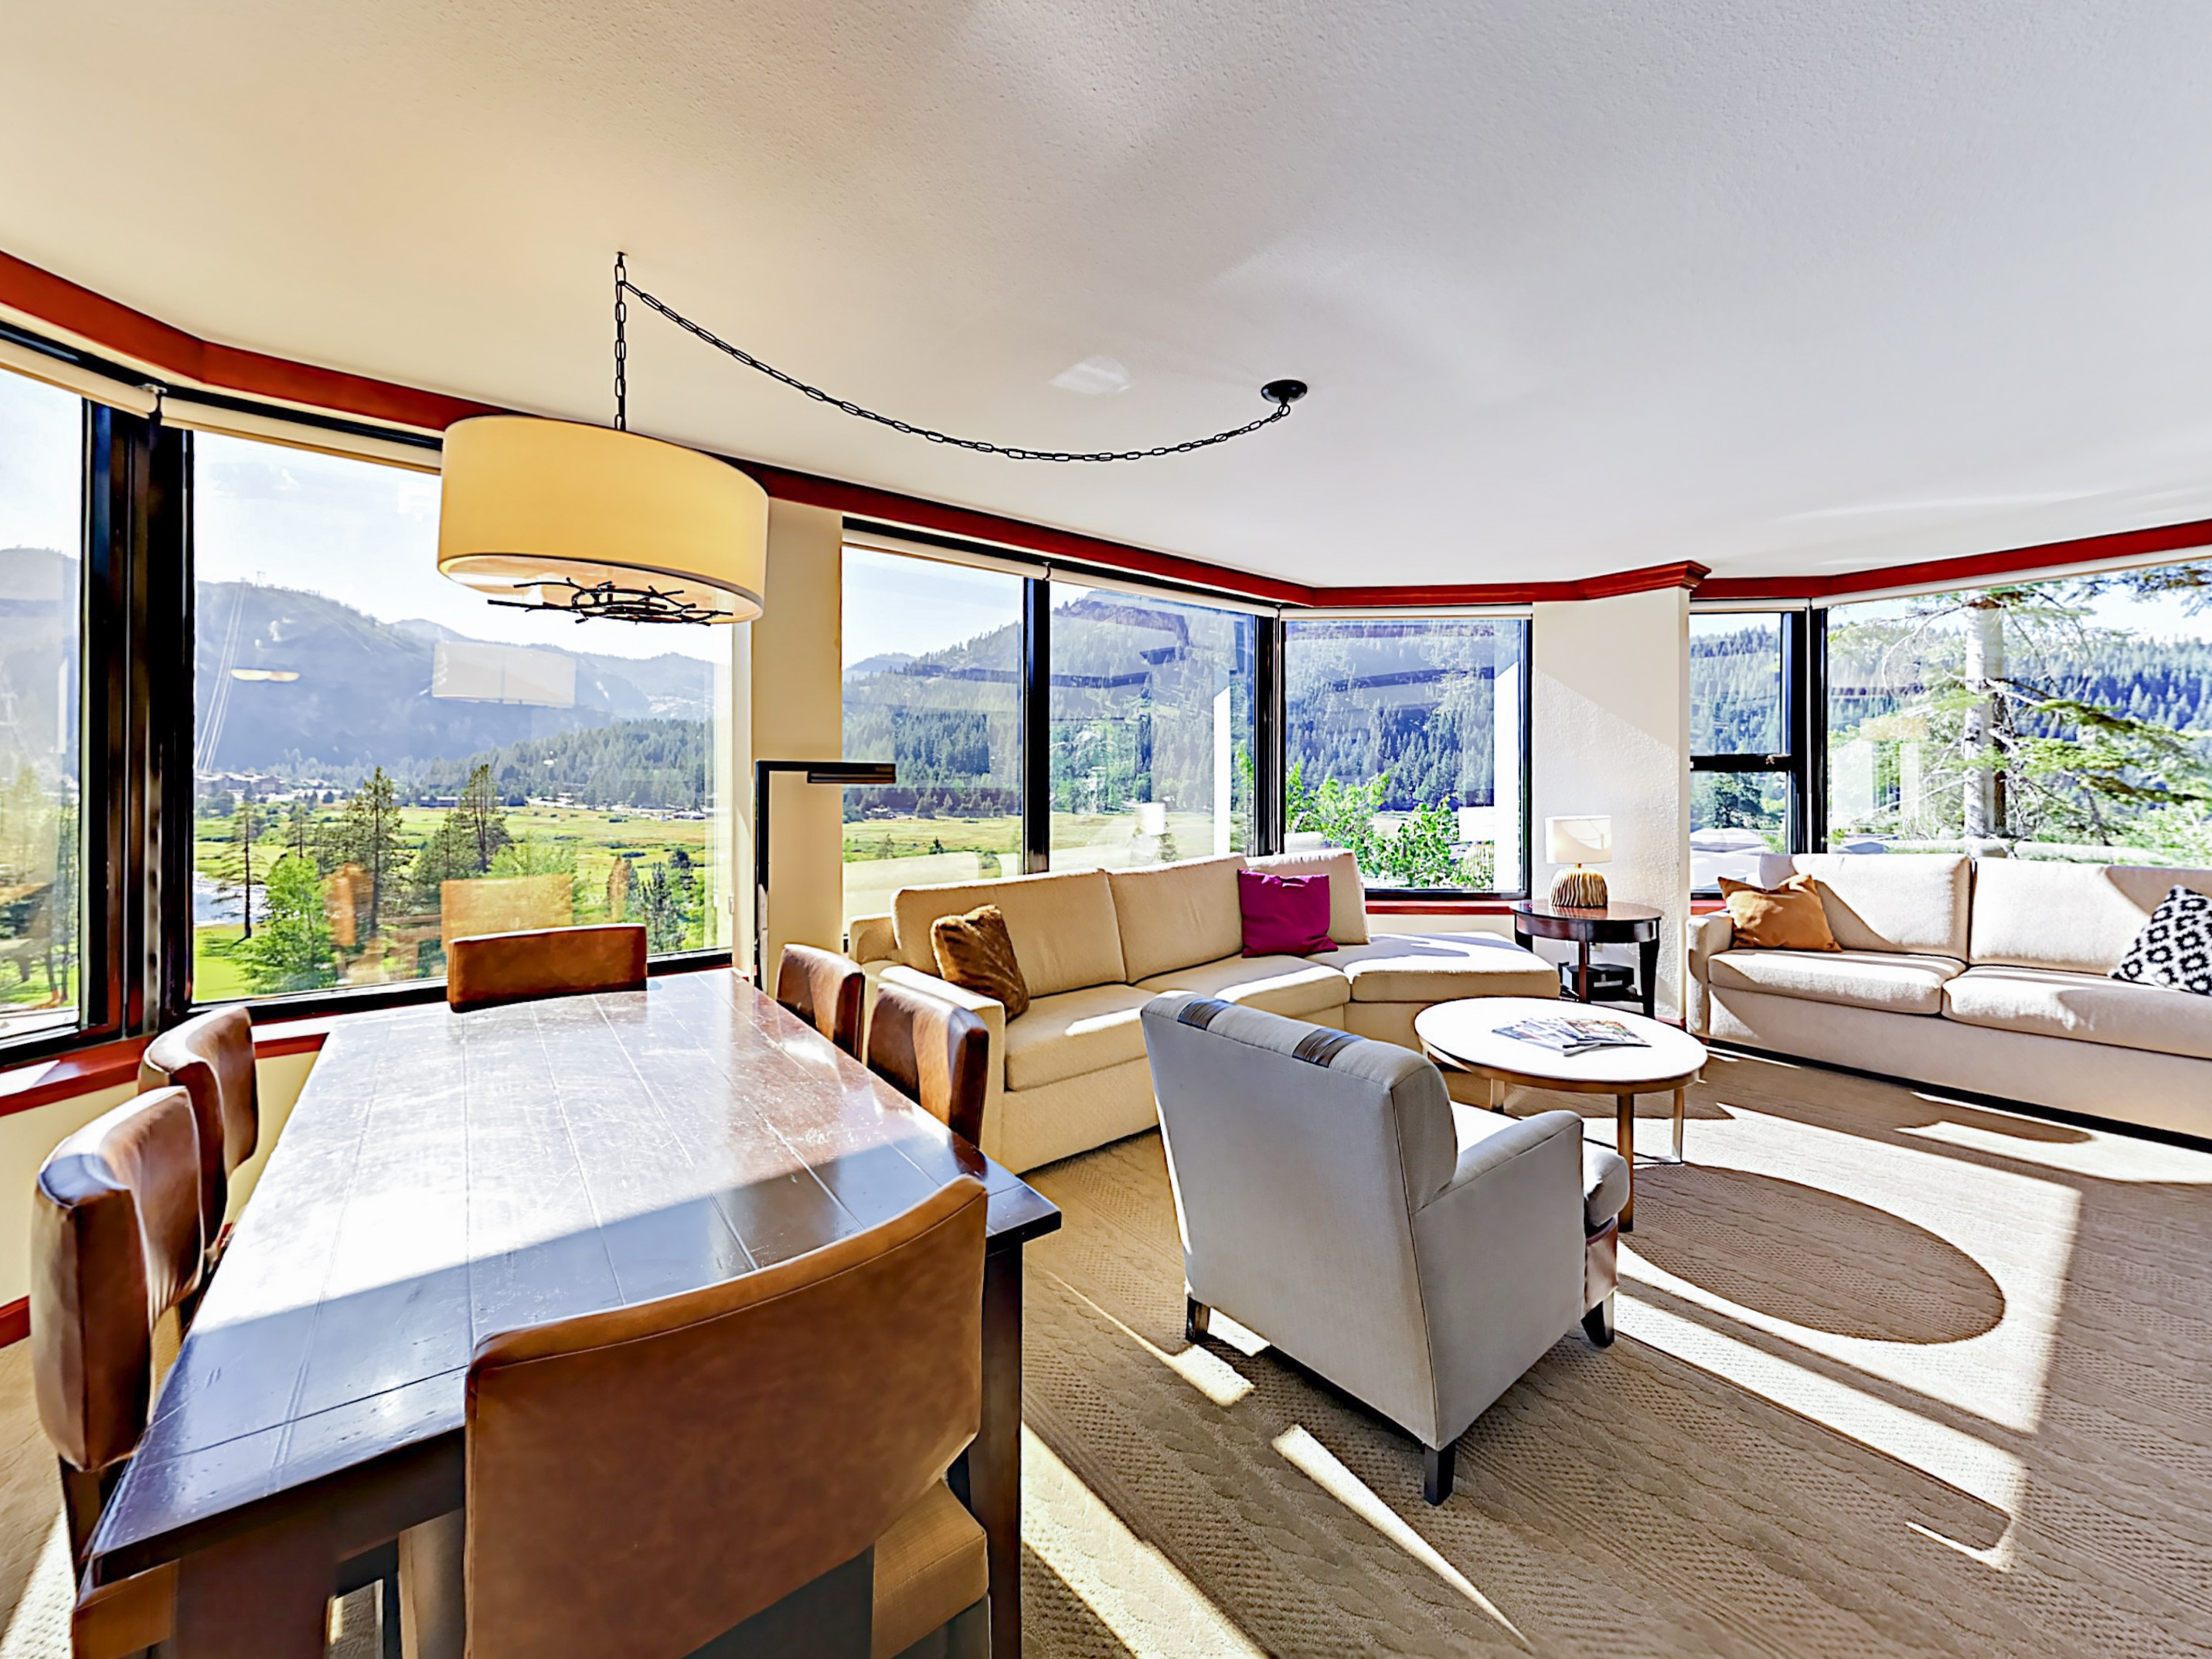 Squaw Valley CA Vacation Rental Welcome to Squaw